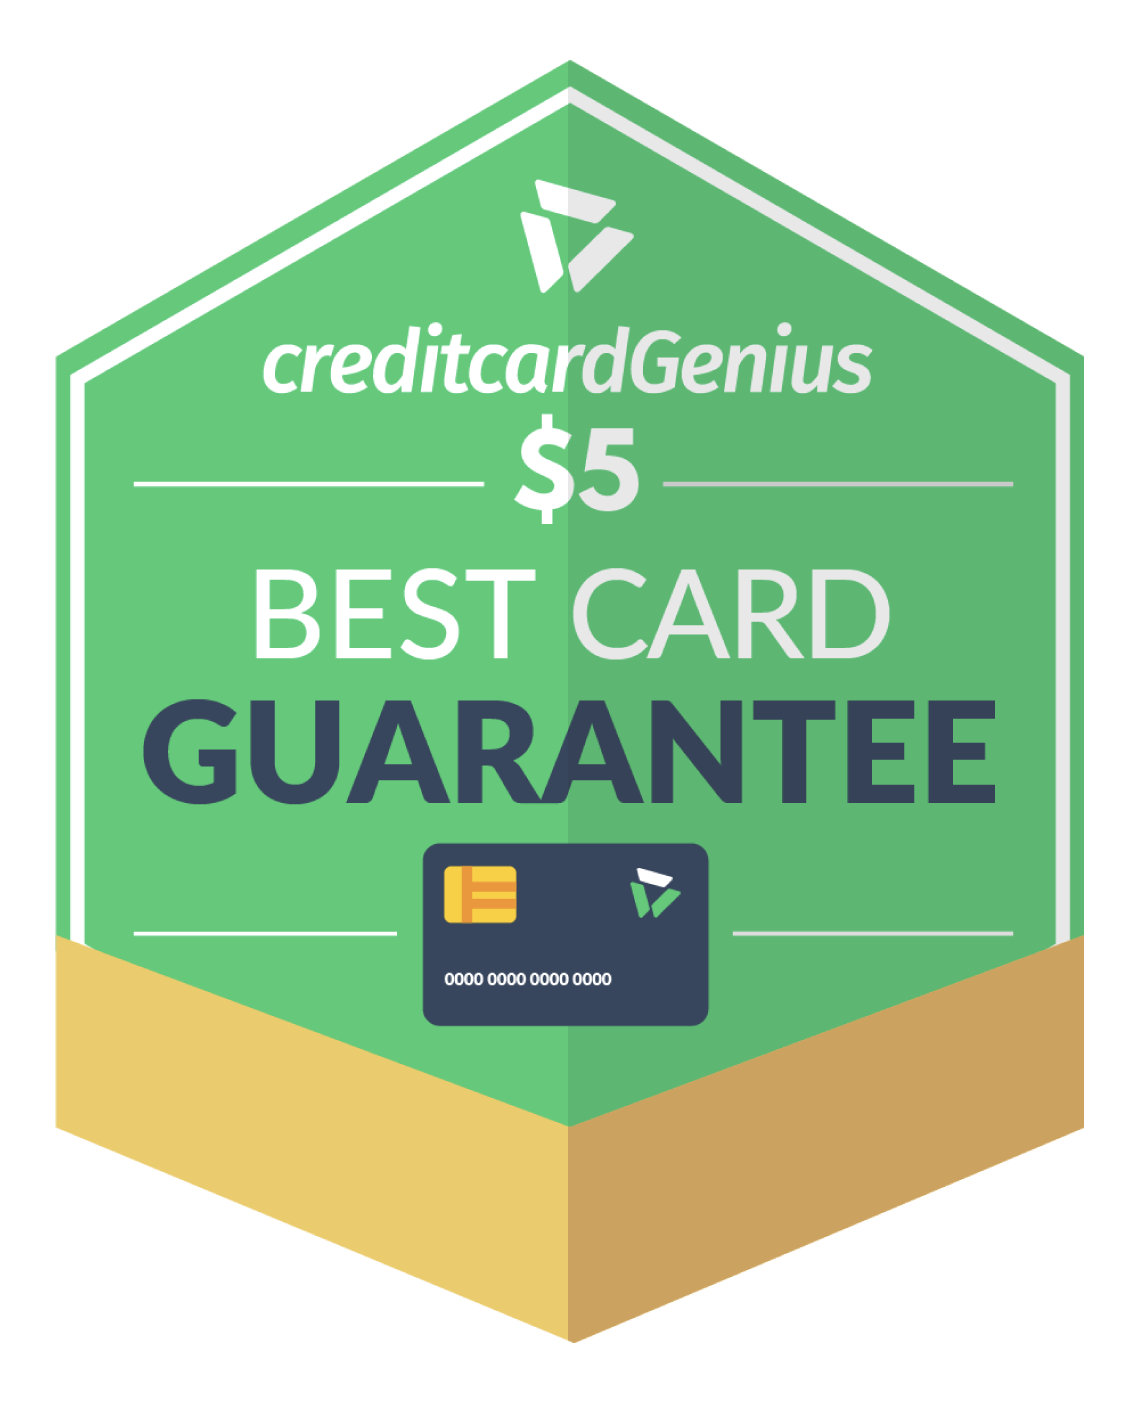 Best Card Guarantee